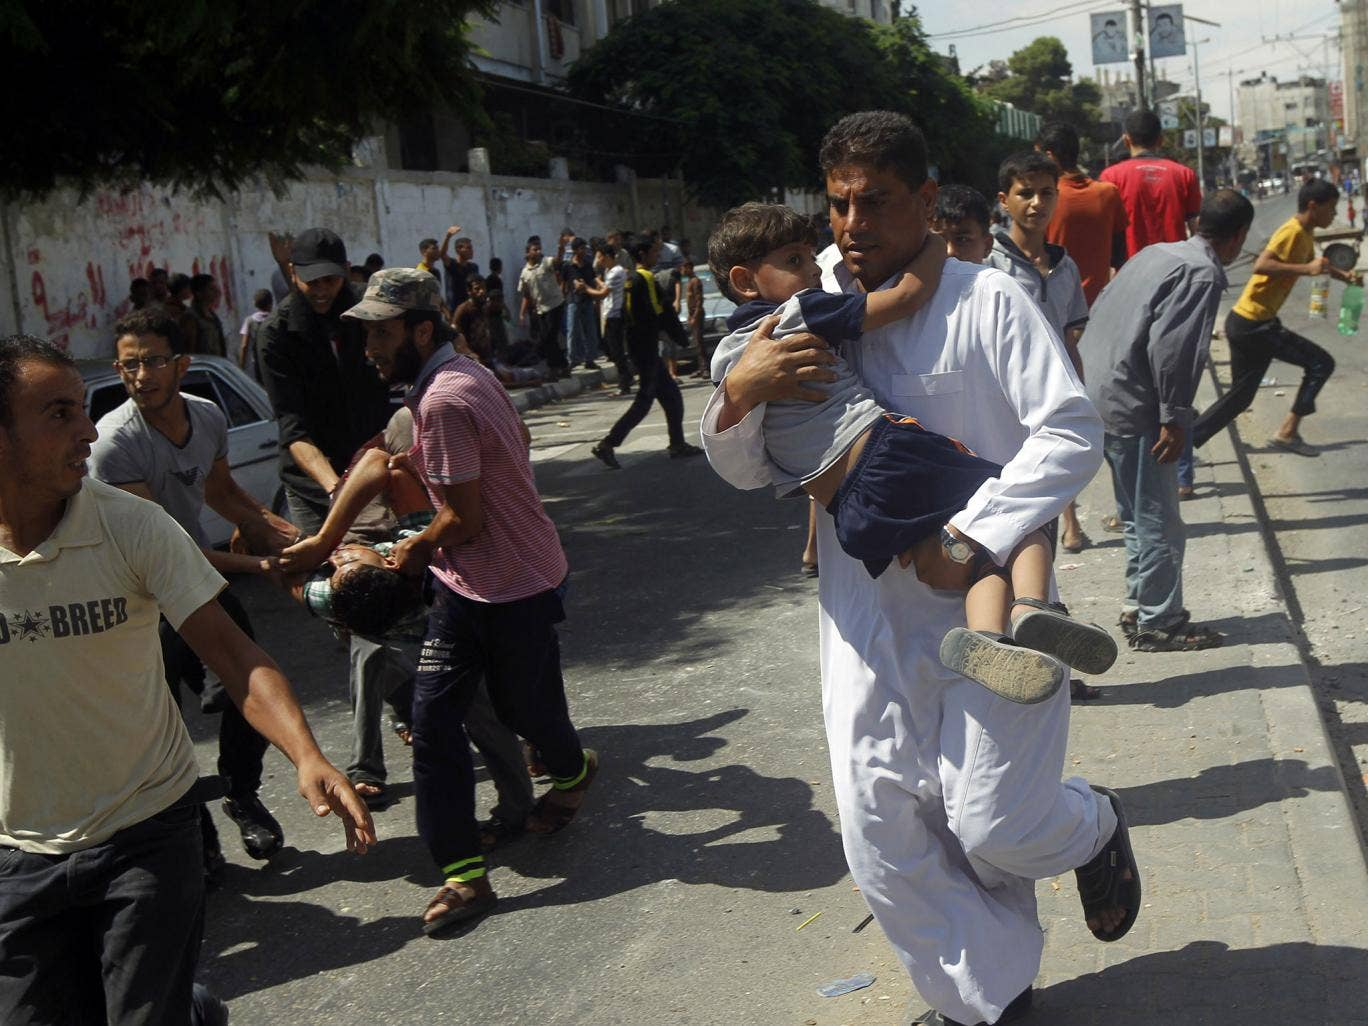 Palestinians carry injured people, including children, following a reported Israeli military strike on a UN school in Rafah